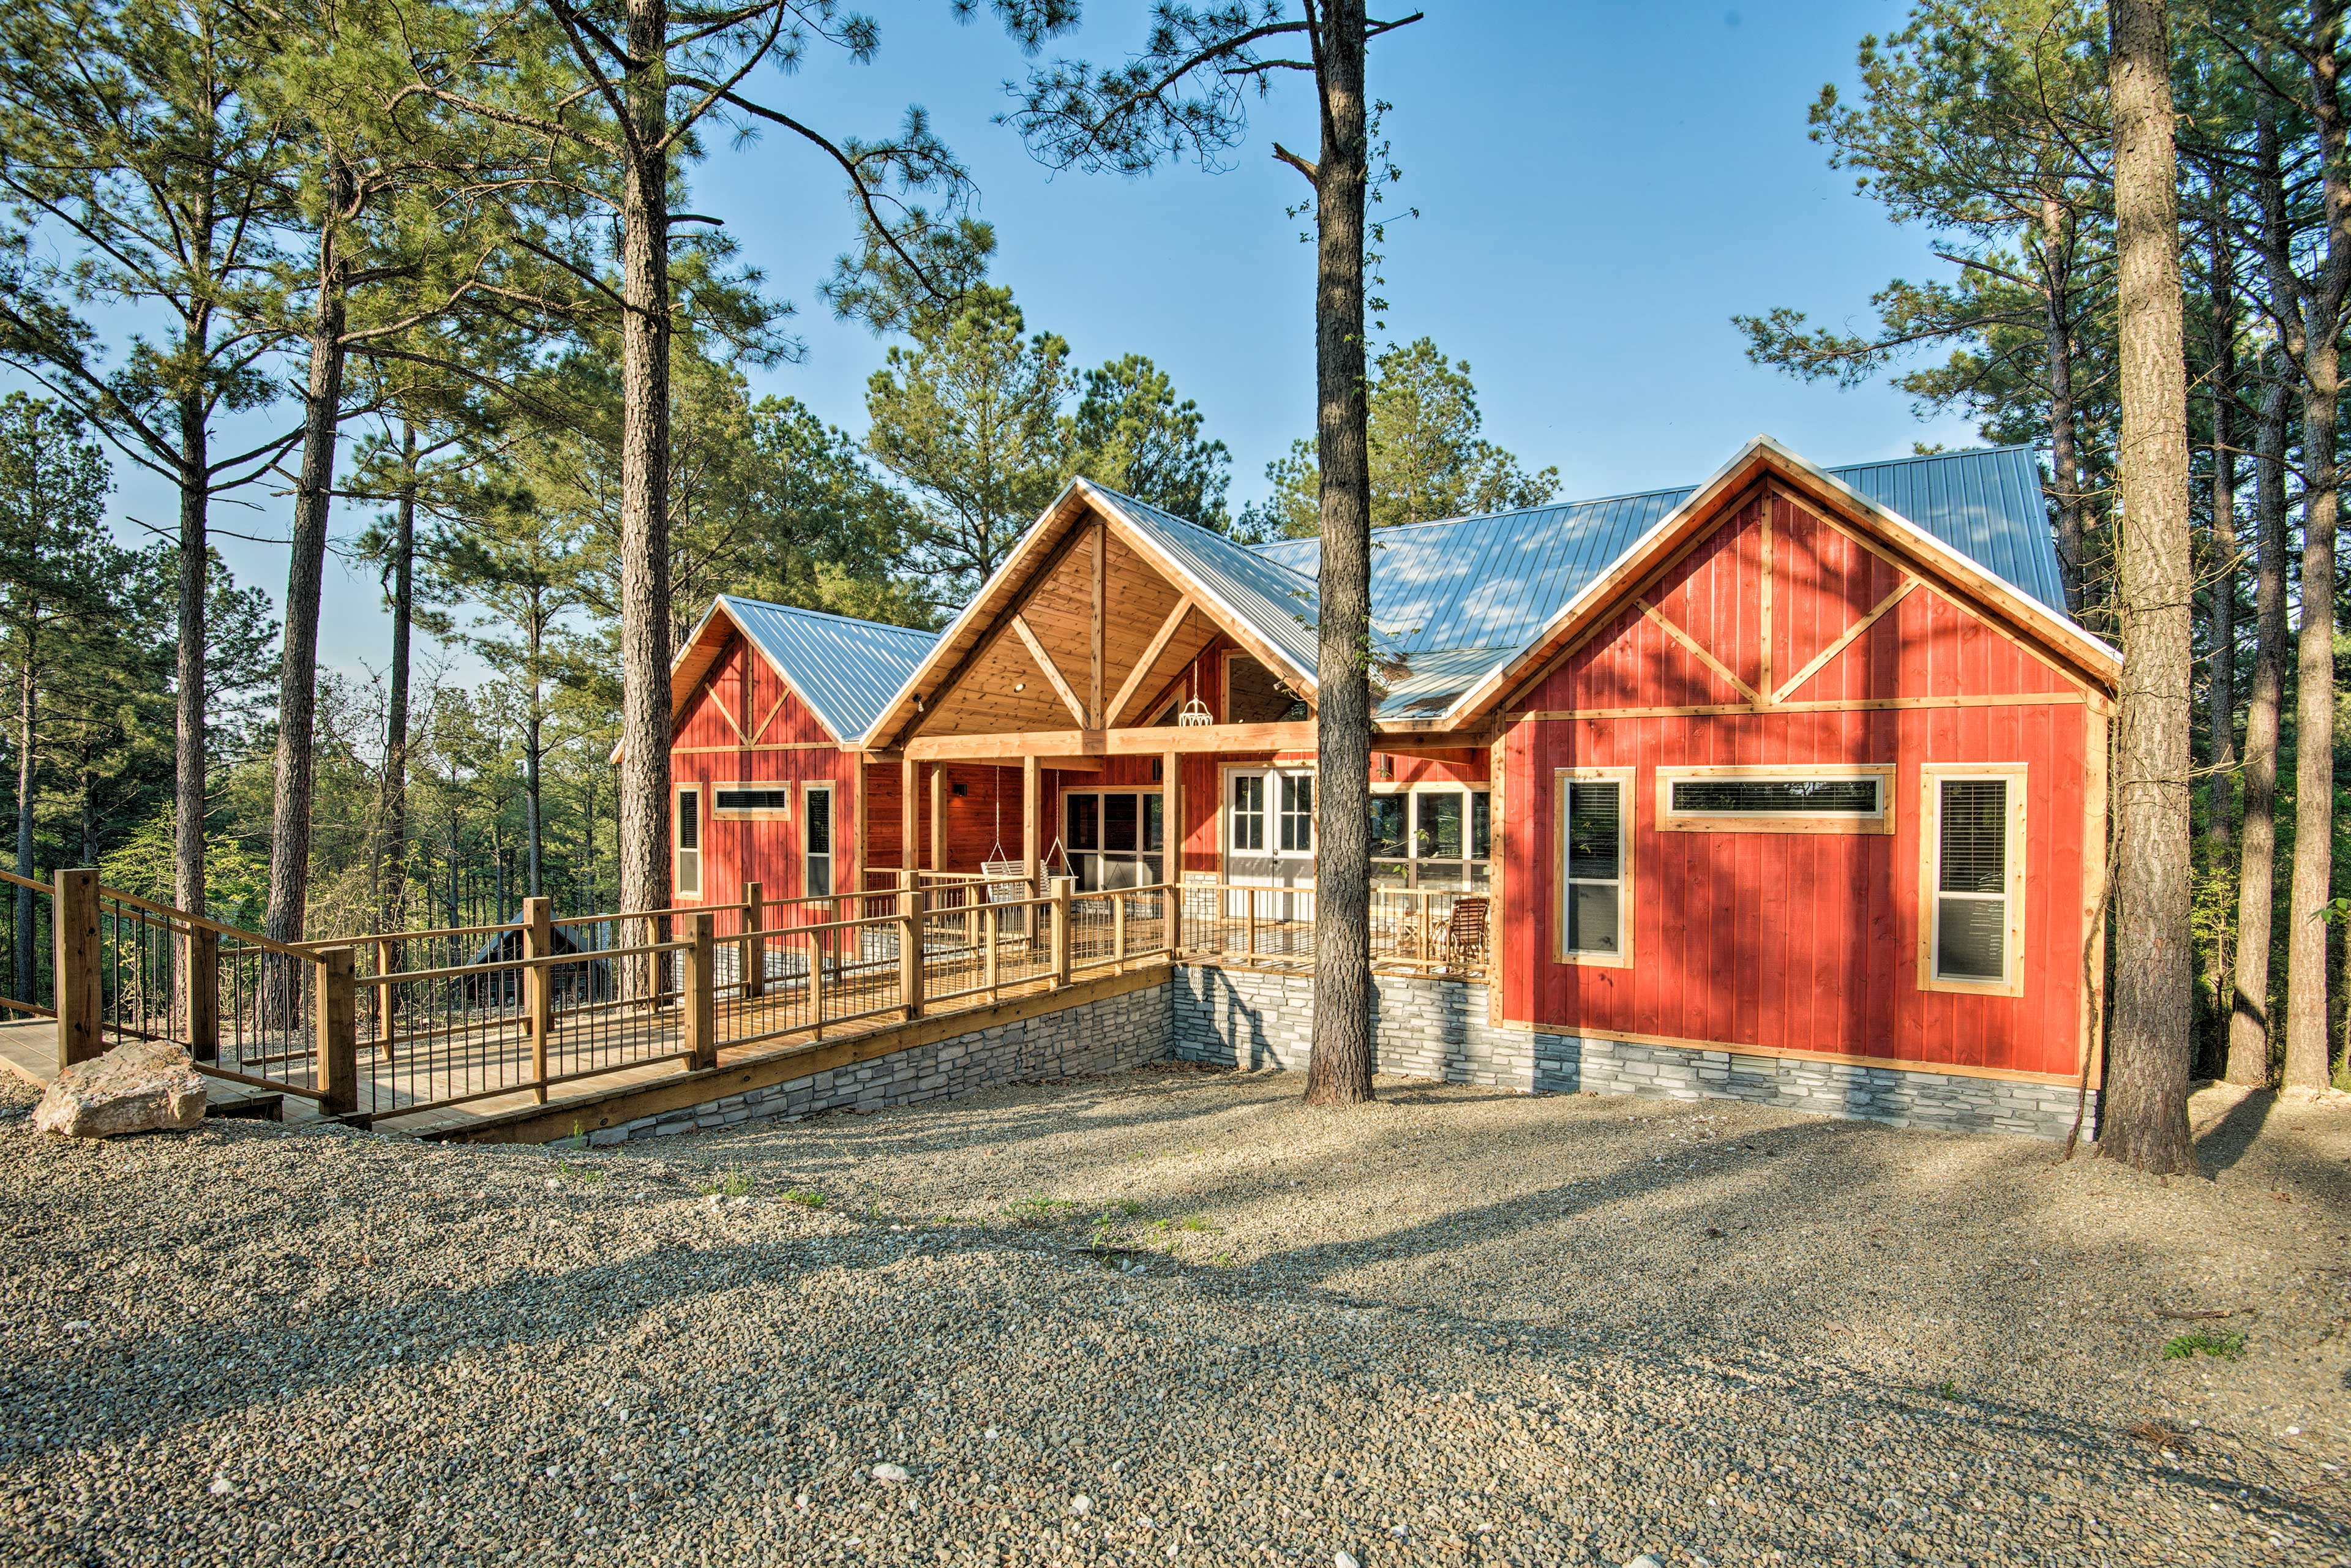 Enjoy a private & peaceful atmosphere at this luxury cabin.